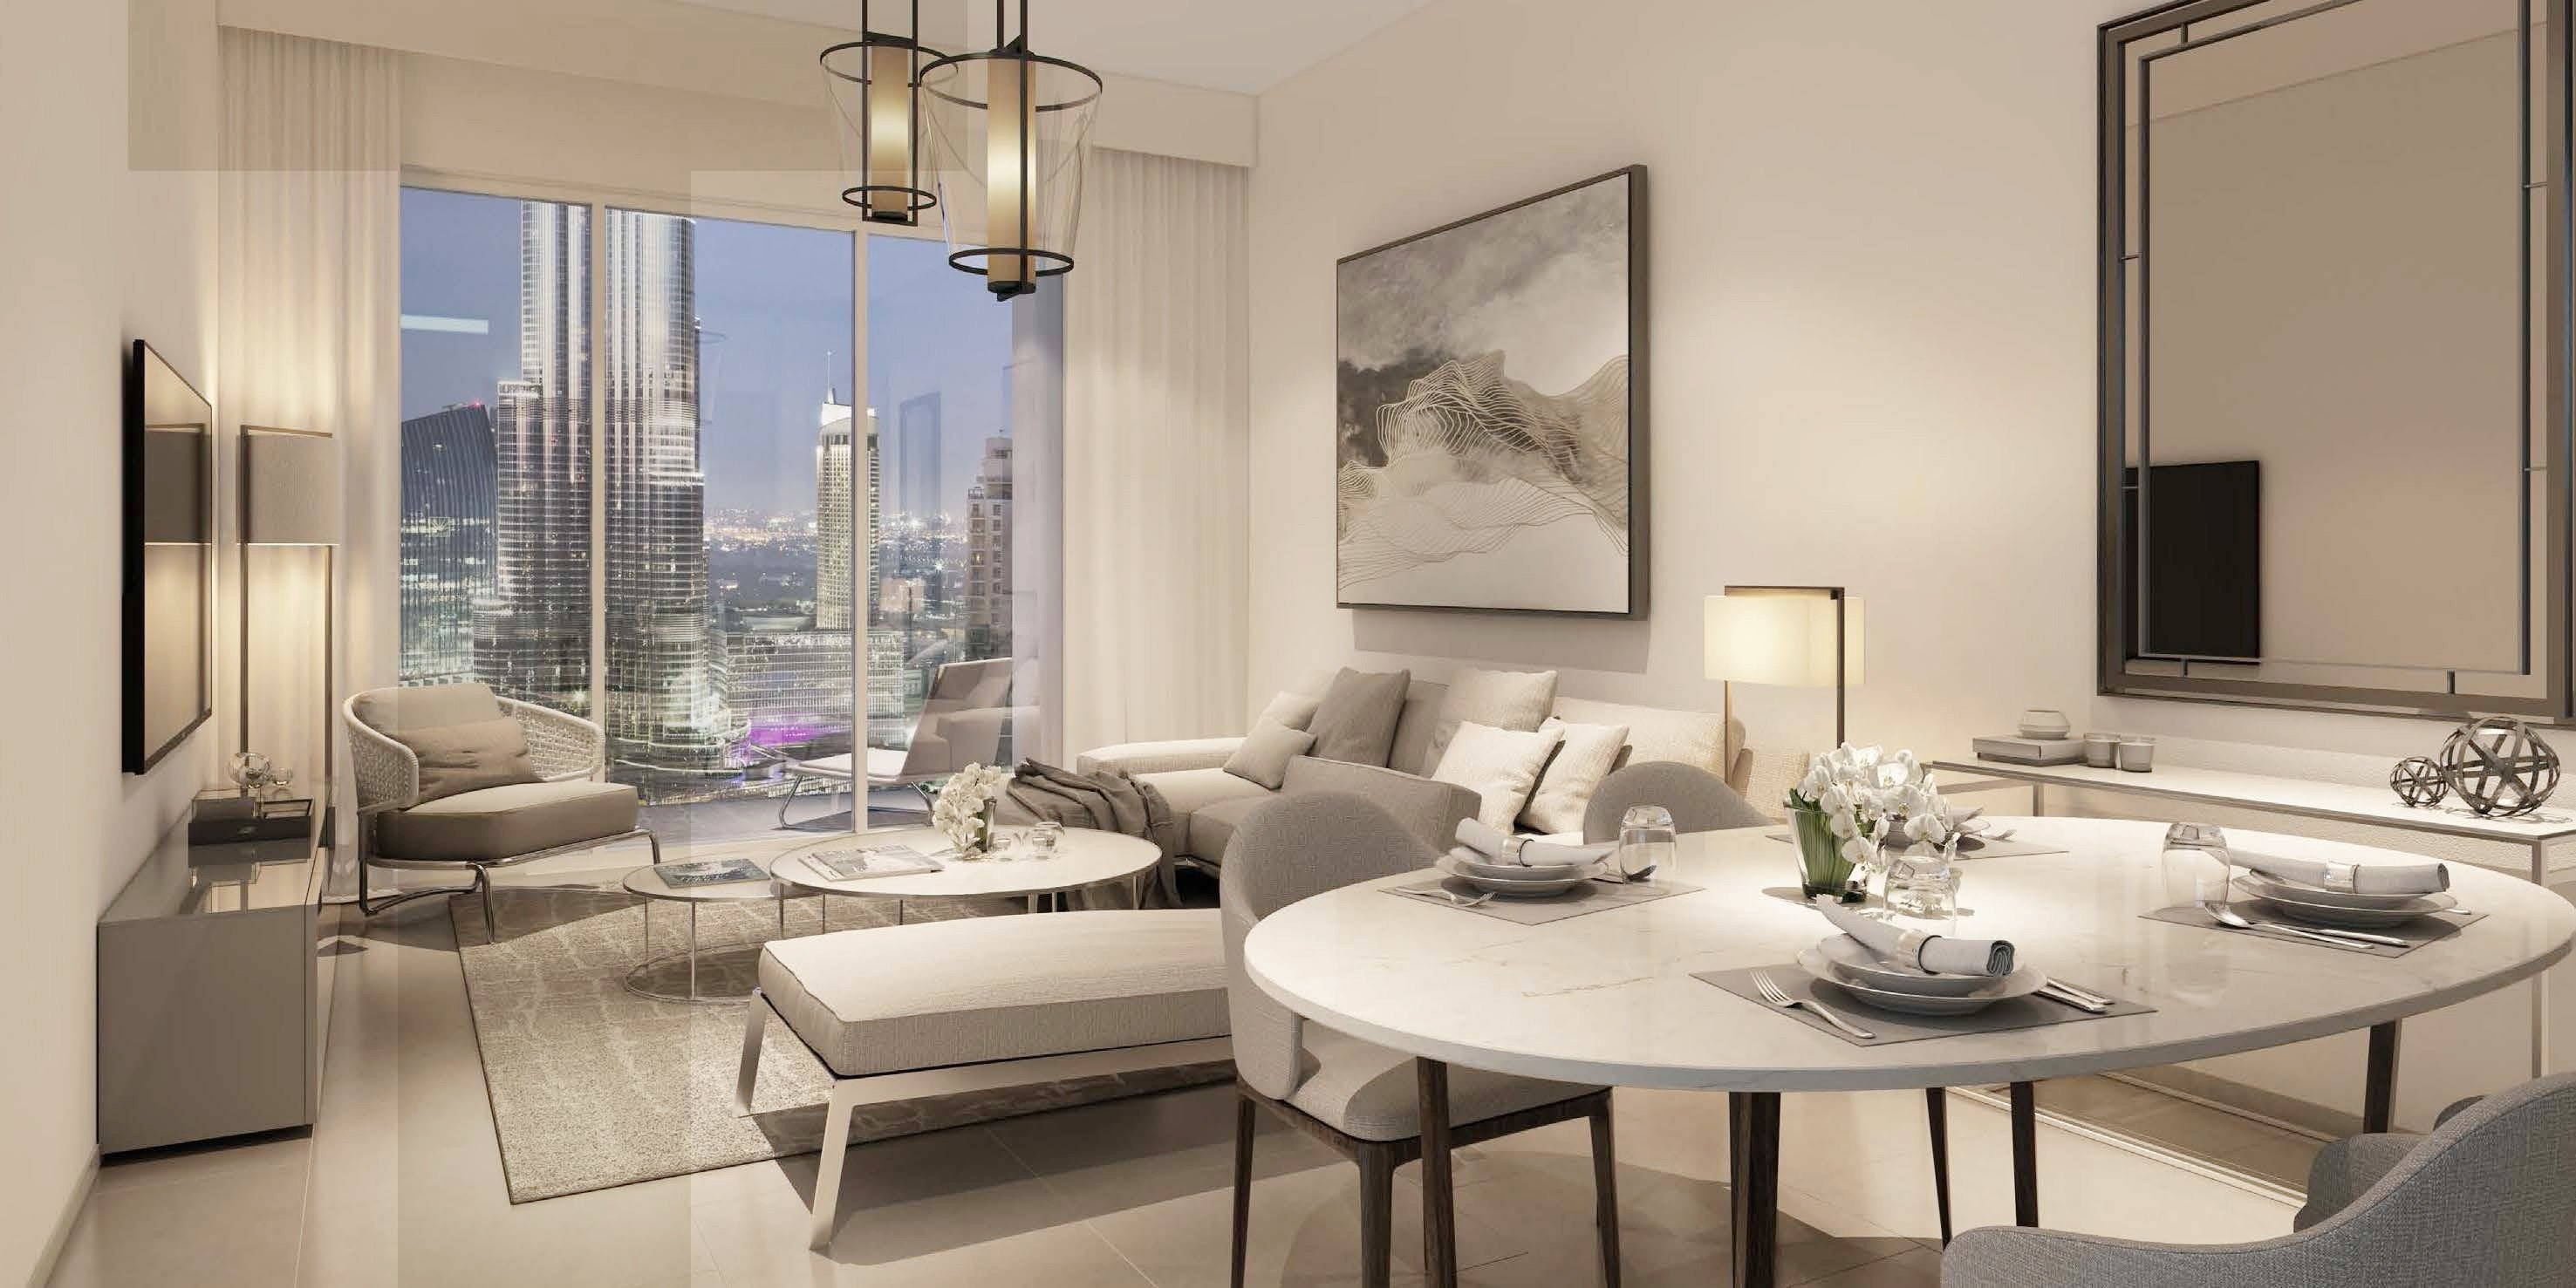 Best 2 Bedroom Apartment For Sale In Act One Act Two Tower 2 With Pictures Original 1024 x 768